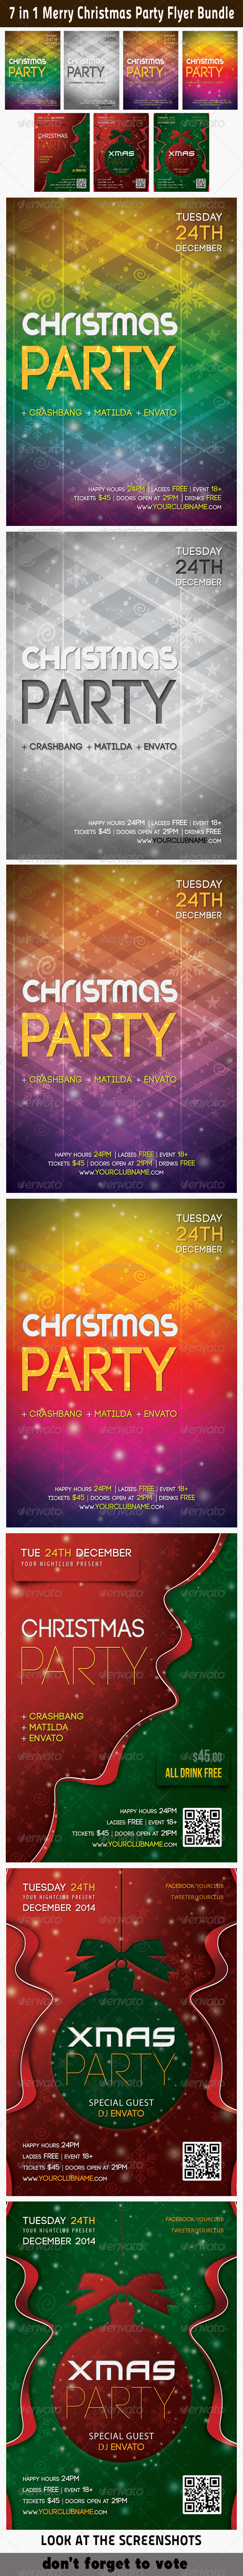 GraphicRiver 7 in 1 Merry Christmas Party Flyer Bundle 6395618